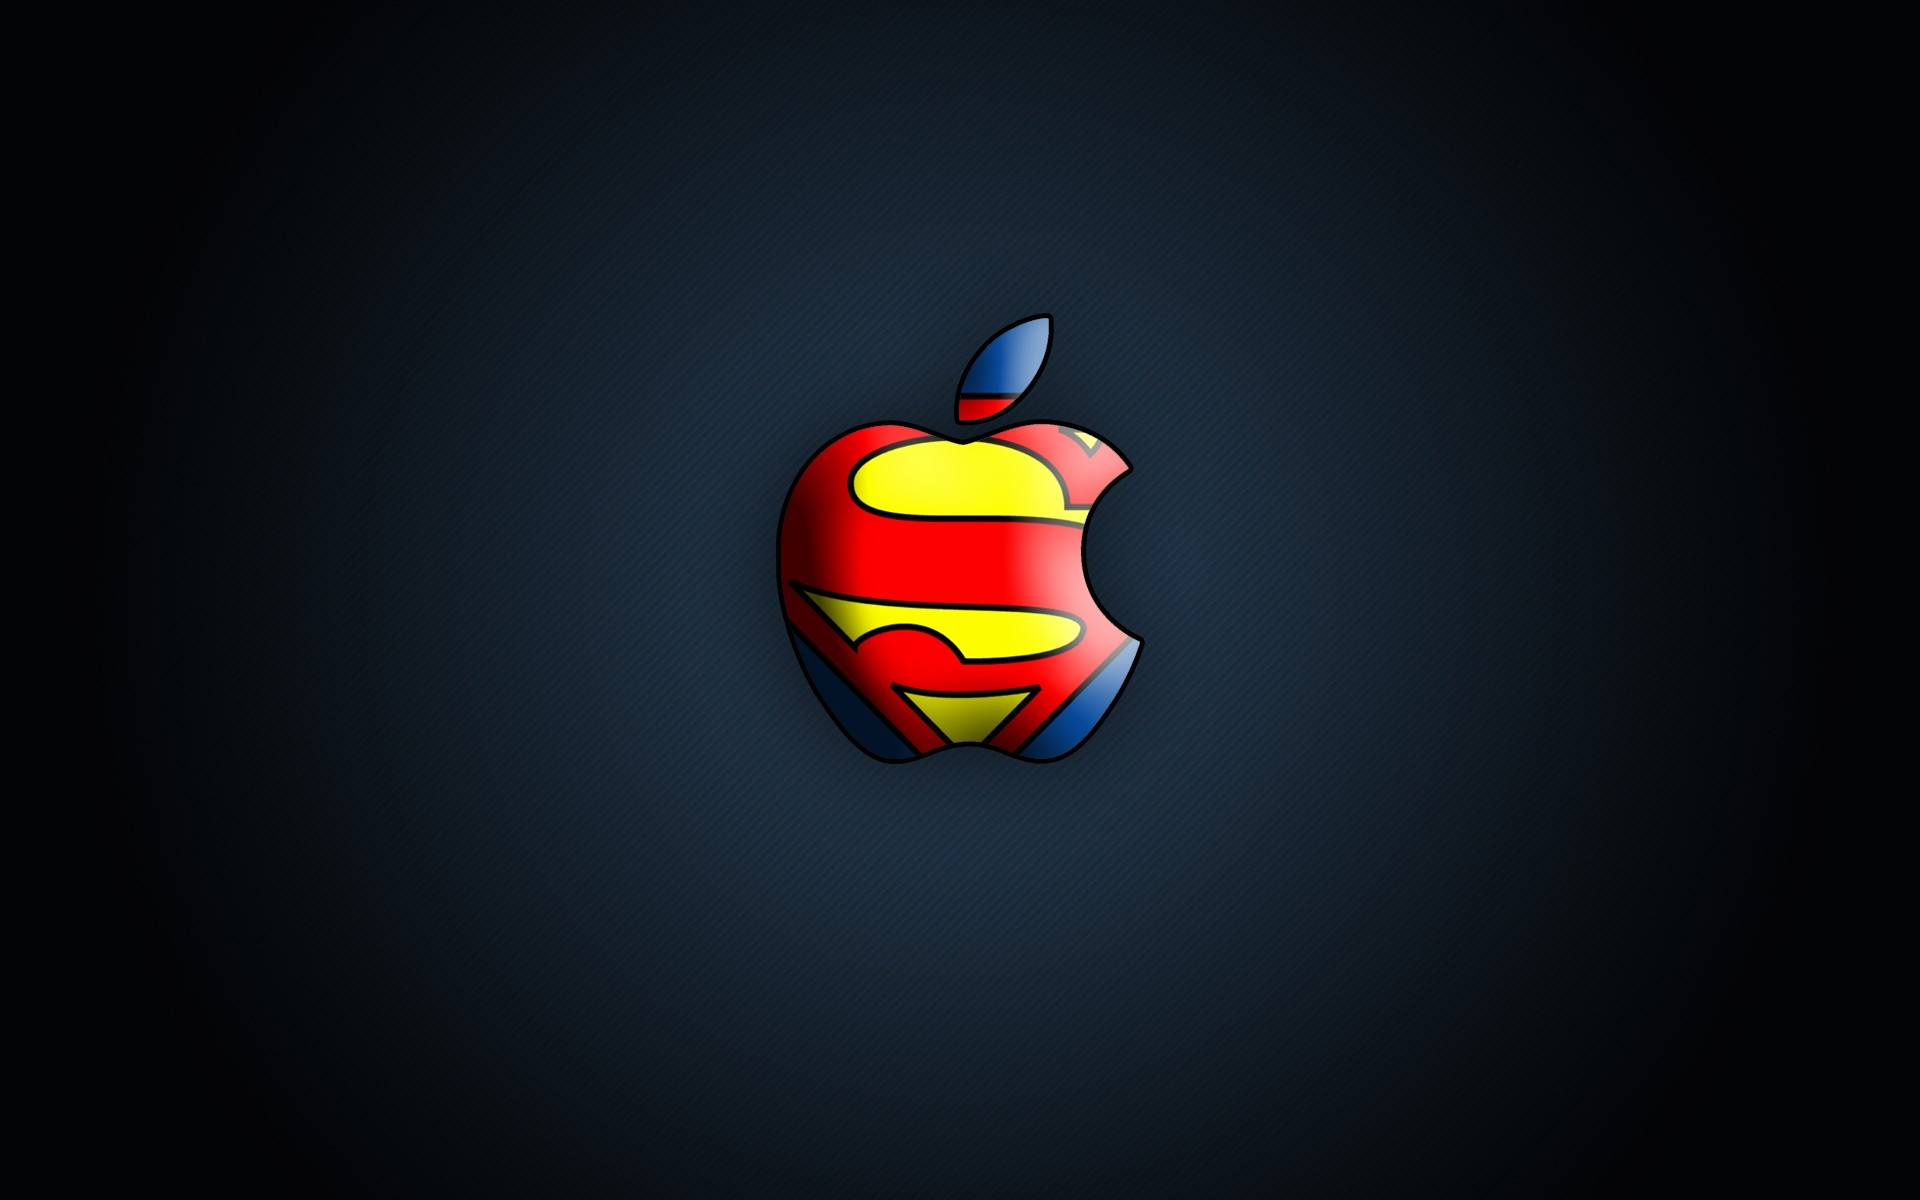 Apple Logo Wallpaper 4k Download